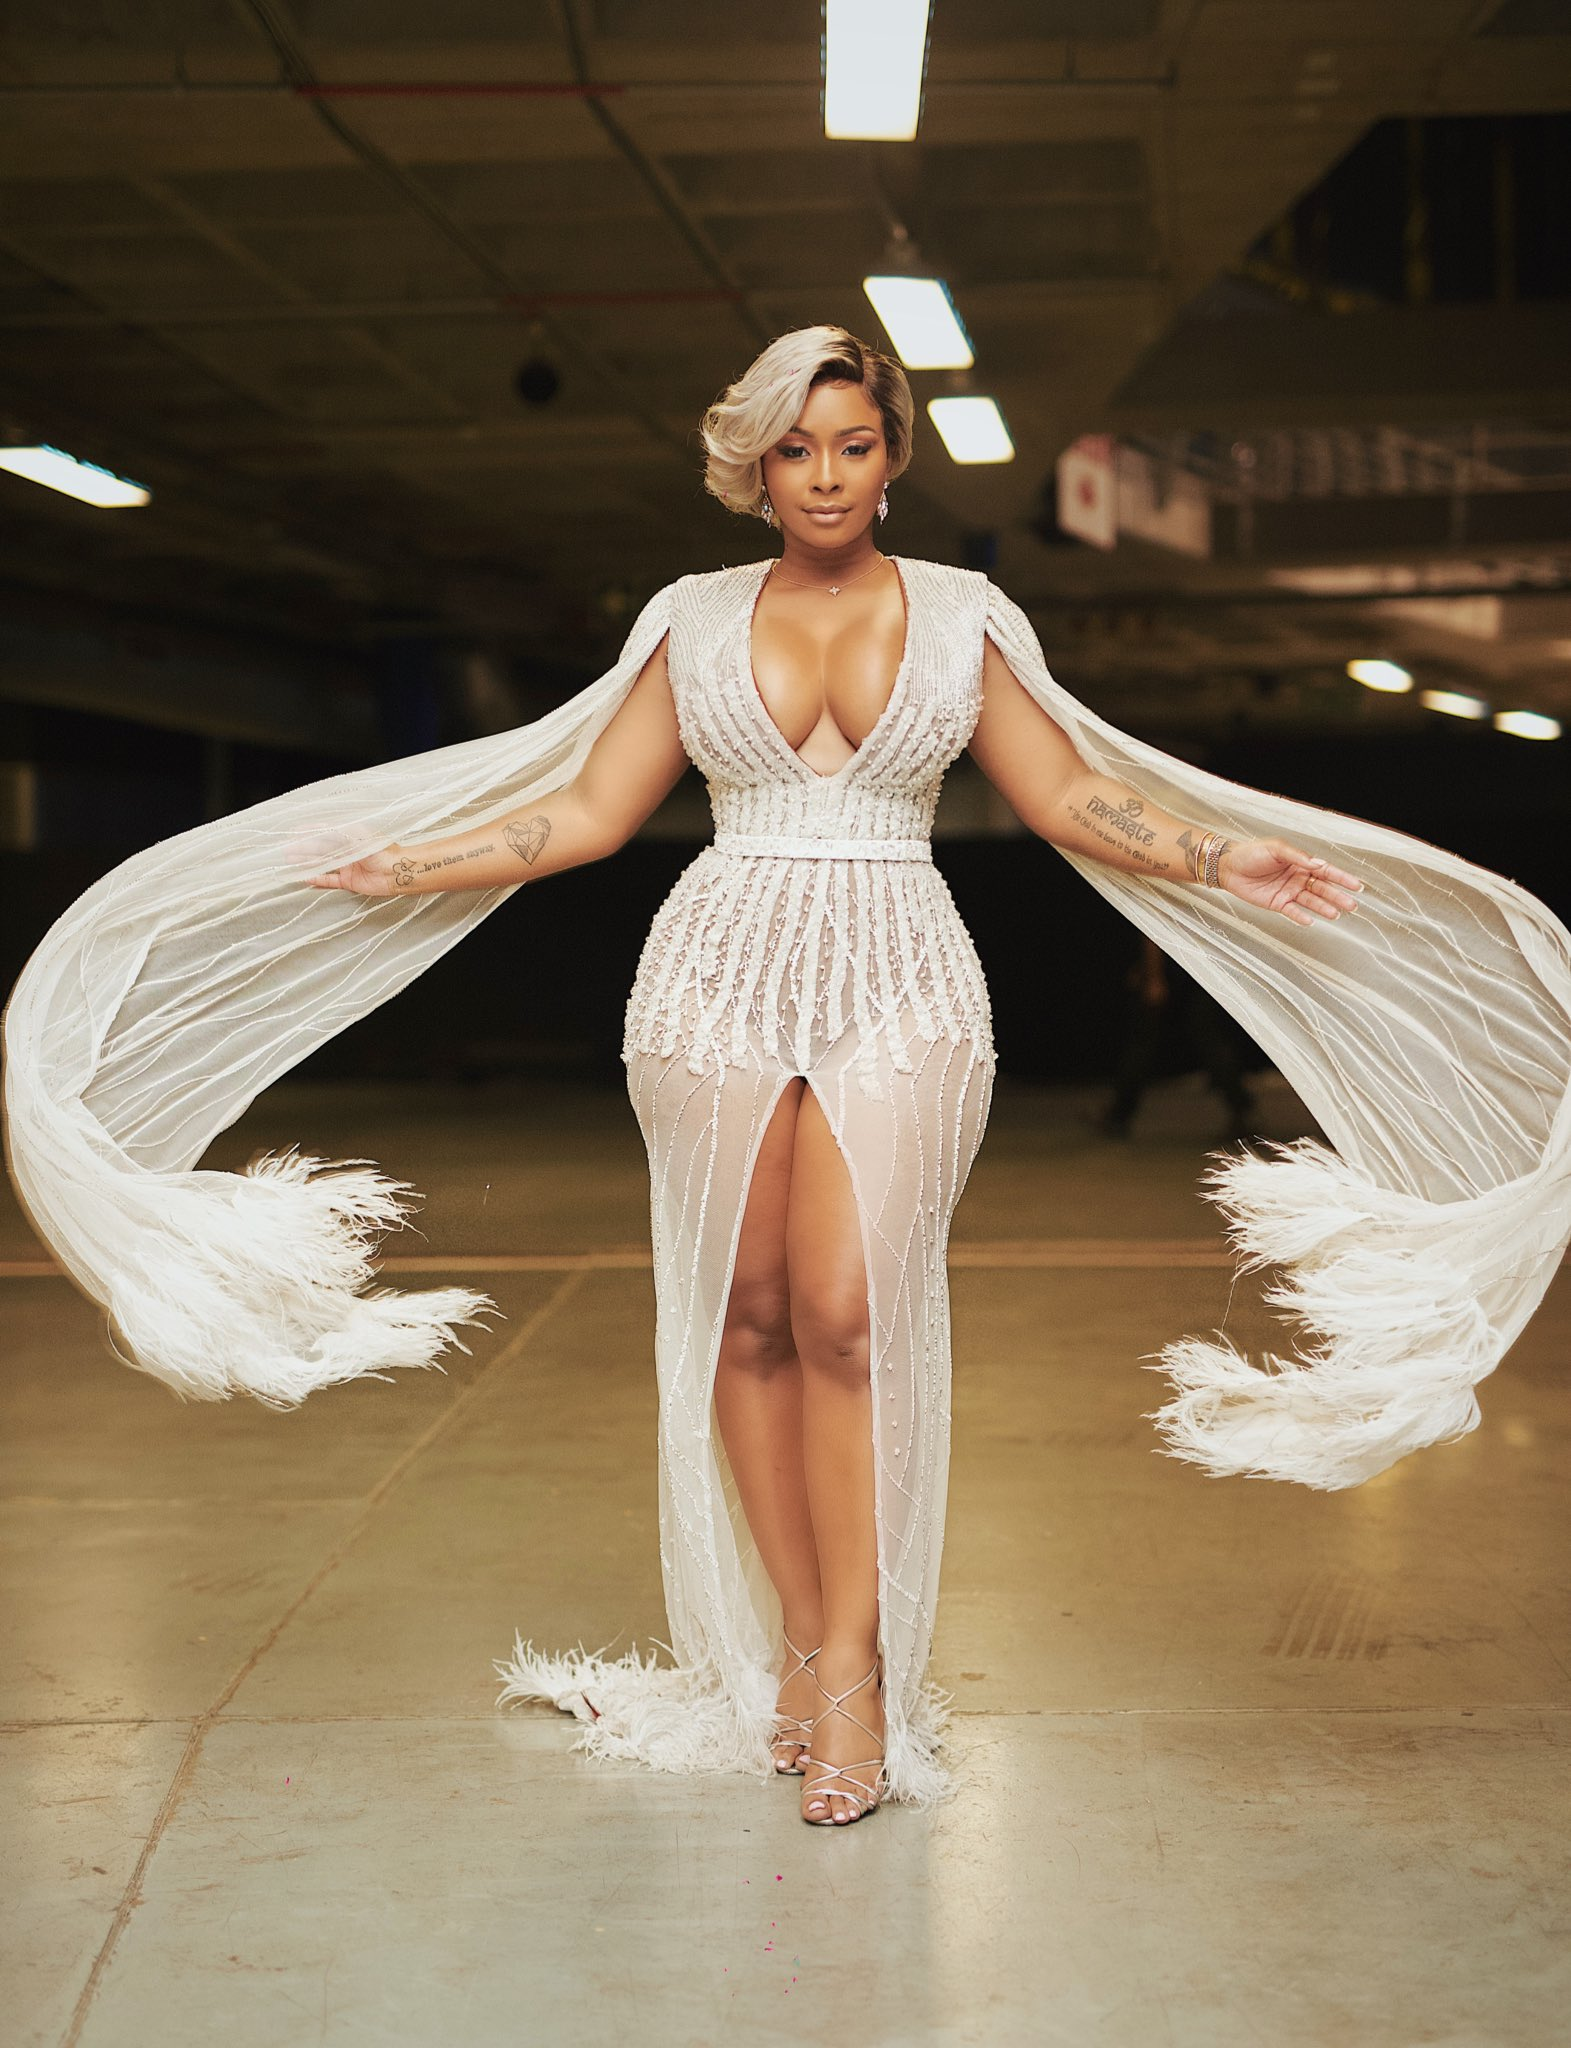 Boity Thulo Shows OFF Curves